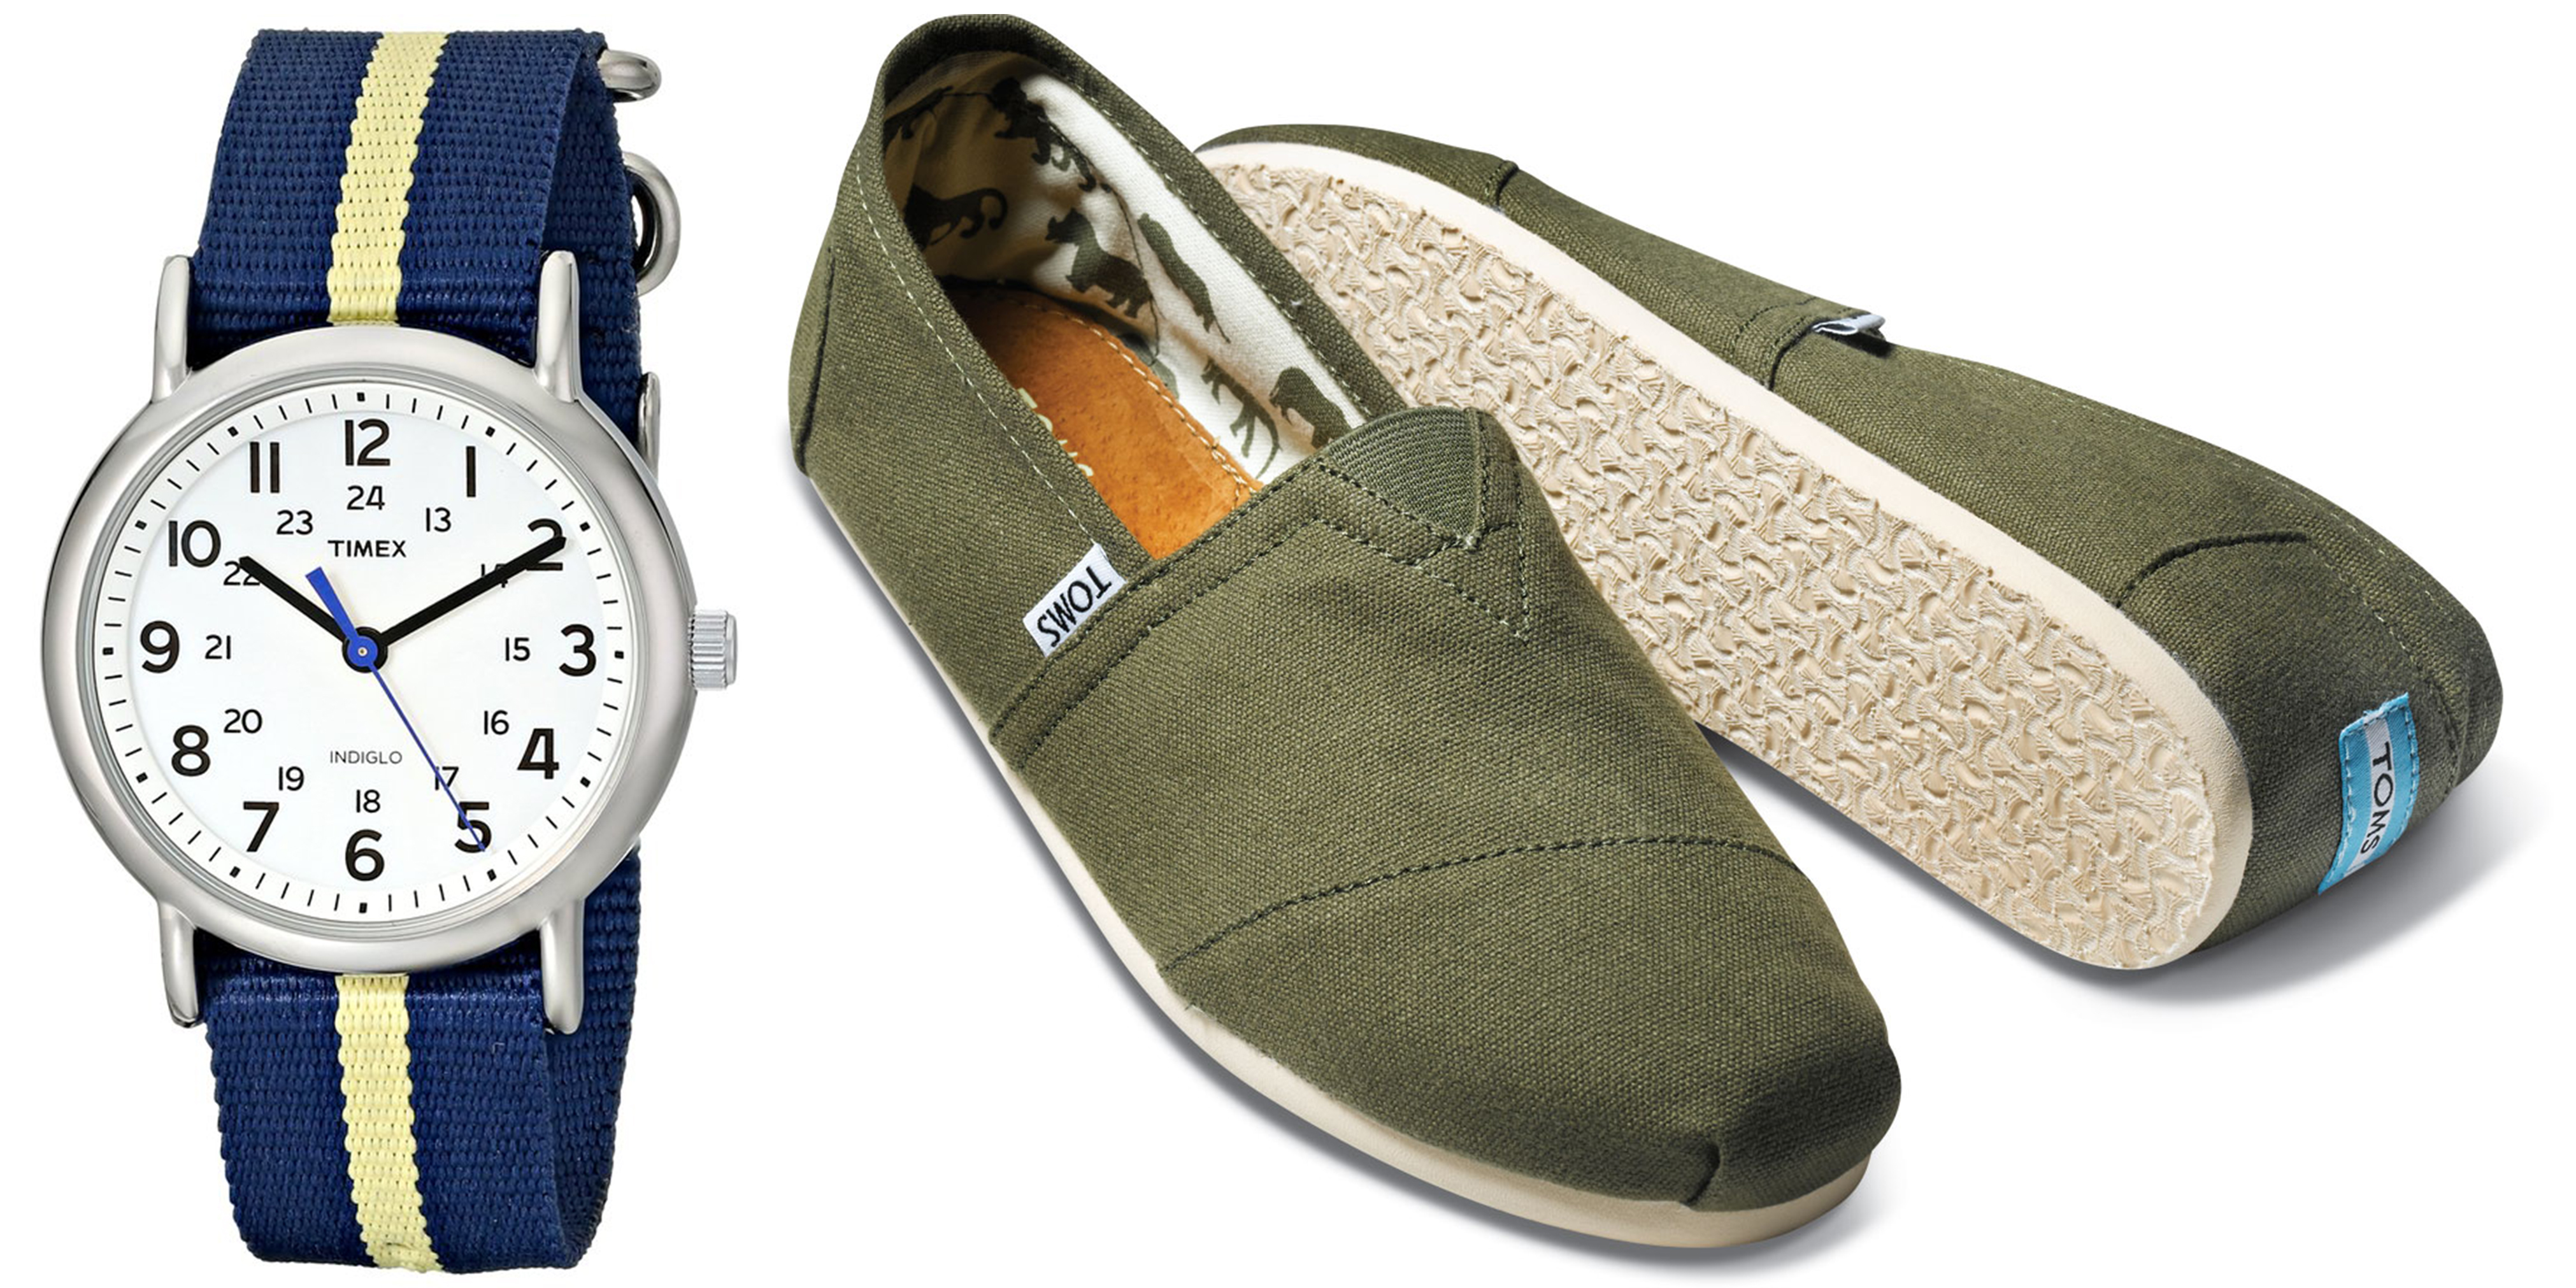 timex-toms-fashion-9to5toys